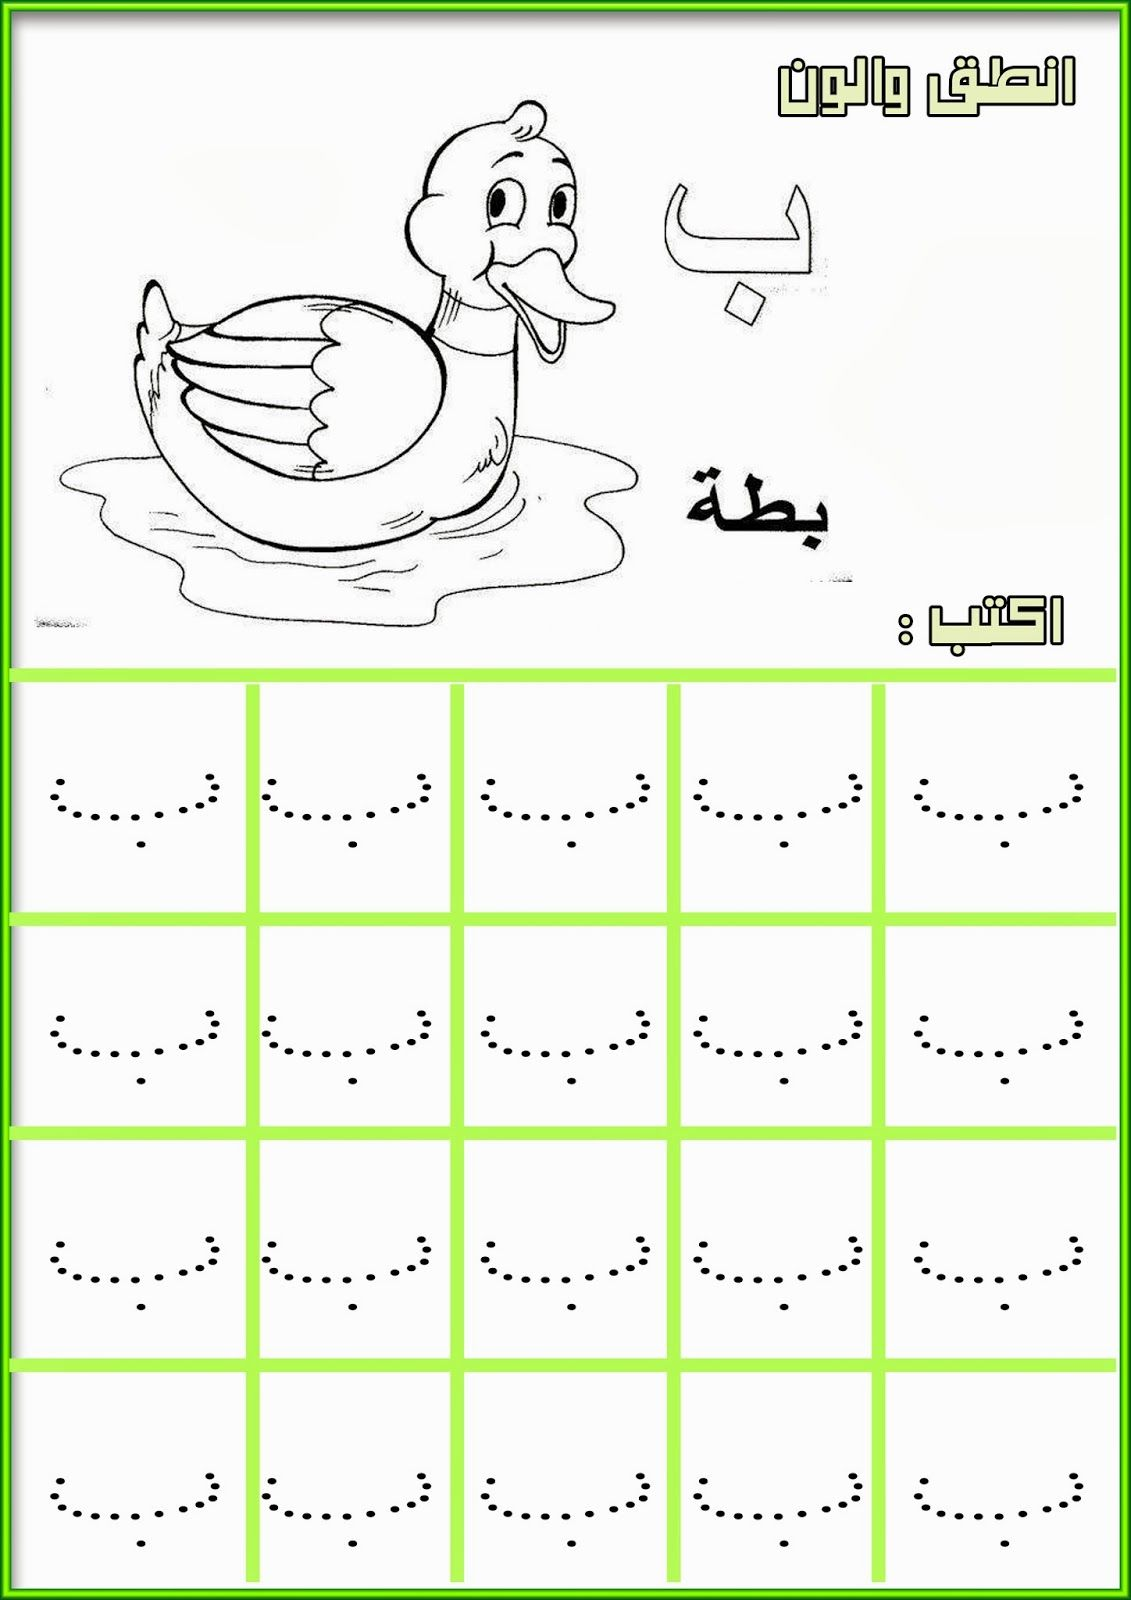 Pin by Layla Mohammad on تعليم الحروف | Pinterest | Arabic alphabet ...